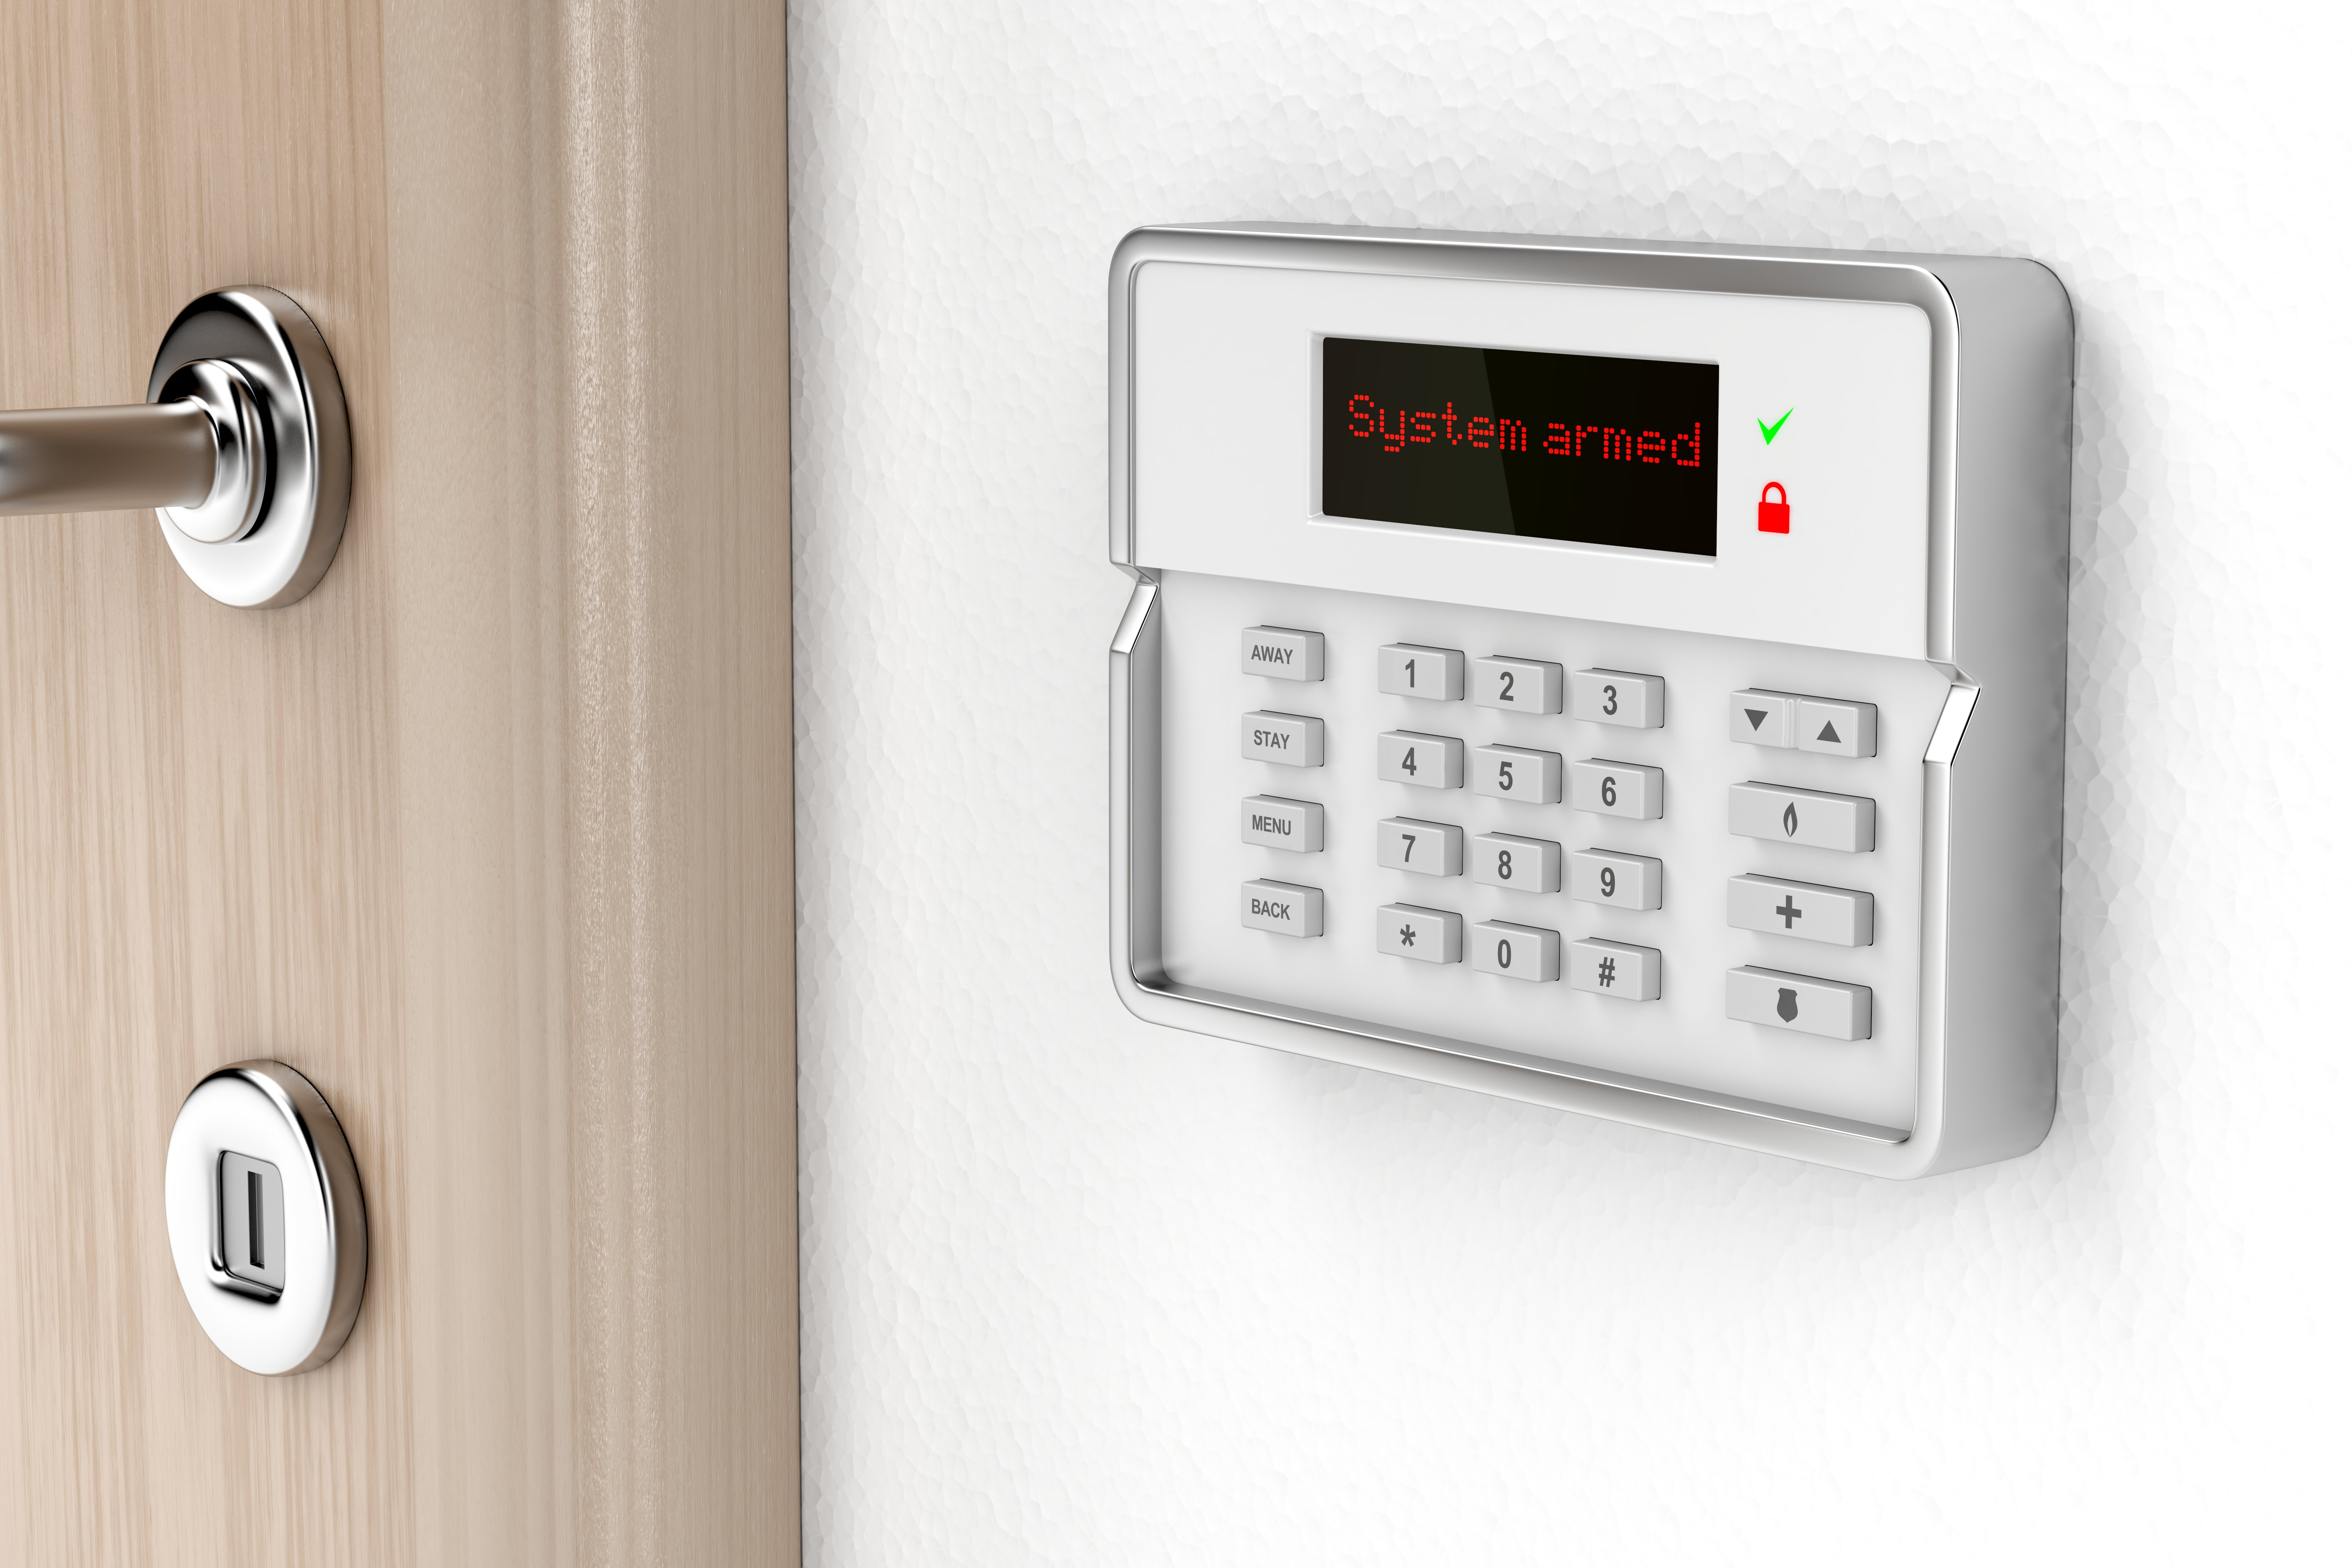 An installed security system inside a home | Photo: Shutterstock